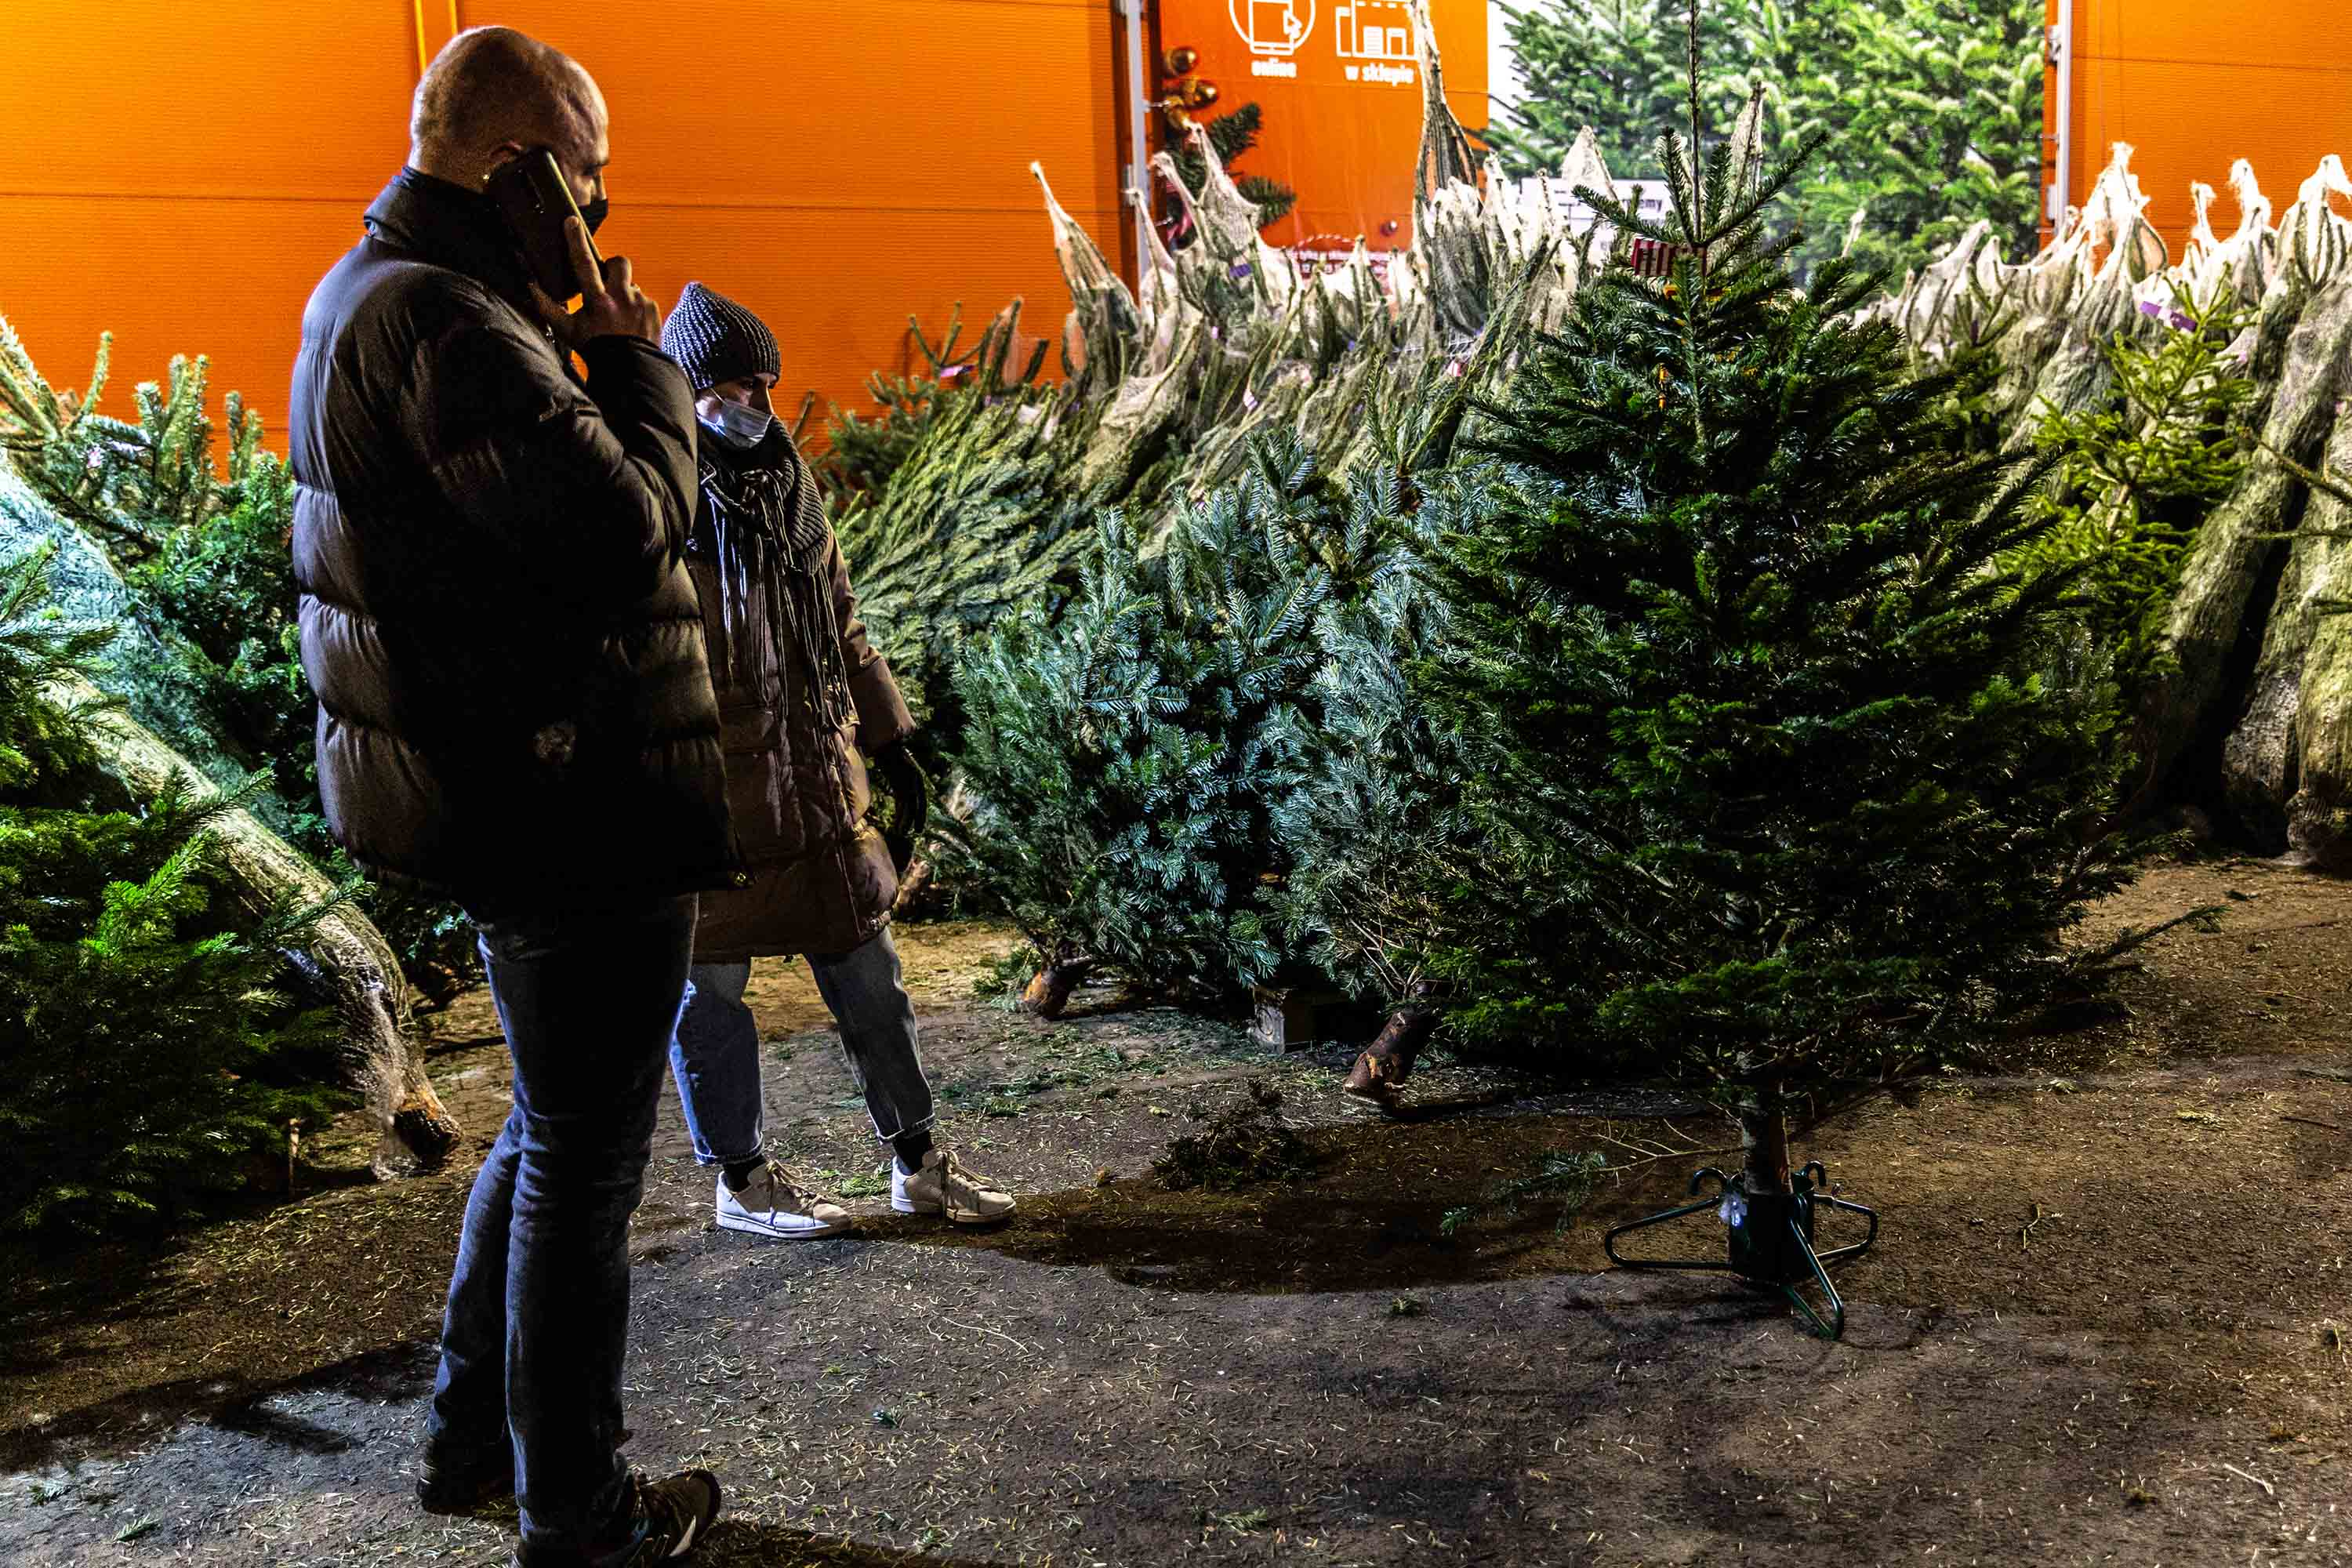 A couple is seen choosing a Christmas tree in Bronowice shopping mall in Krakow, Poland, as the city prepares for Christmas amid coronavirus restriction measures, on December 16.